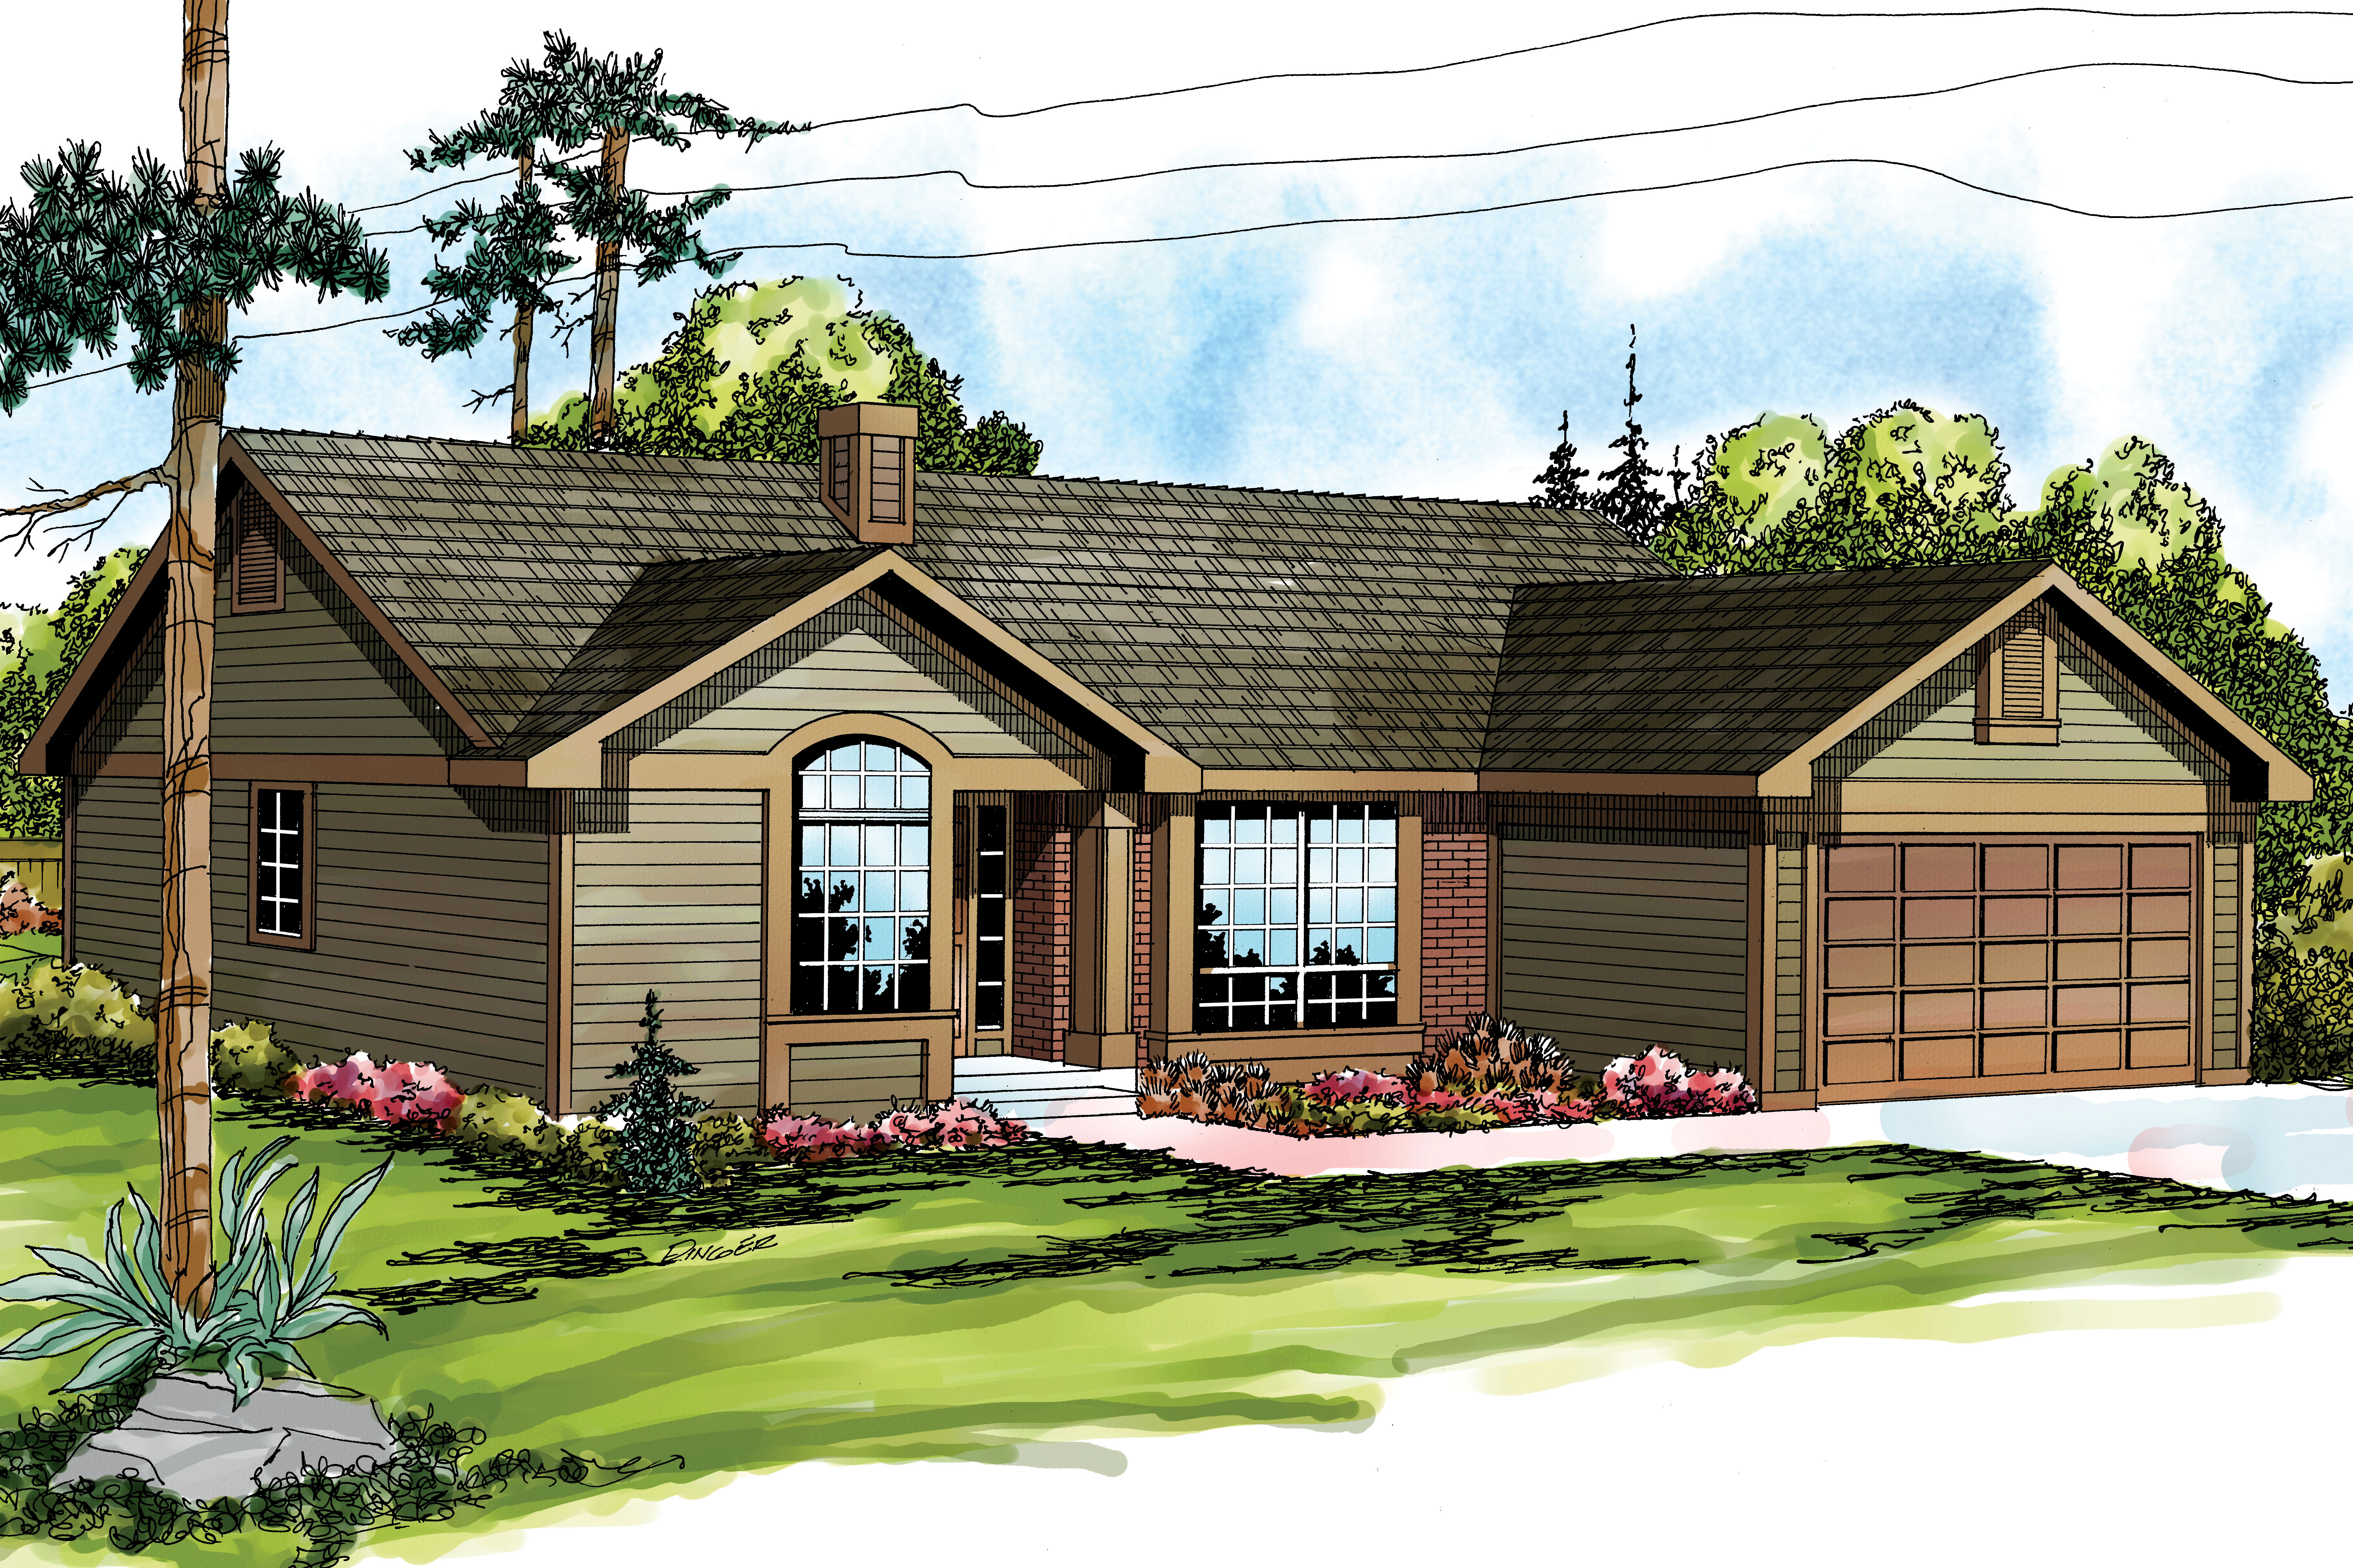 traditional_house_plan_phoenix_10 061_front